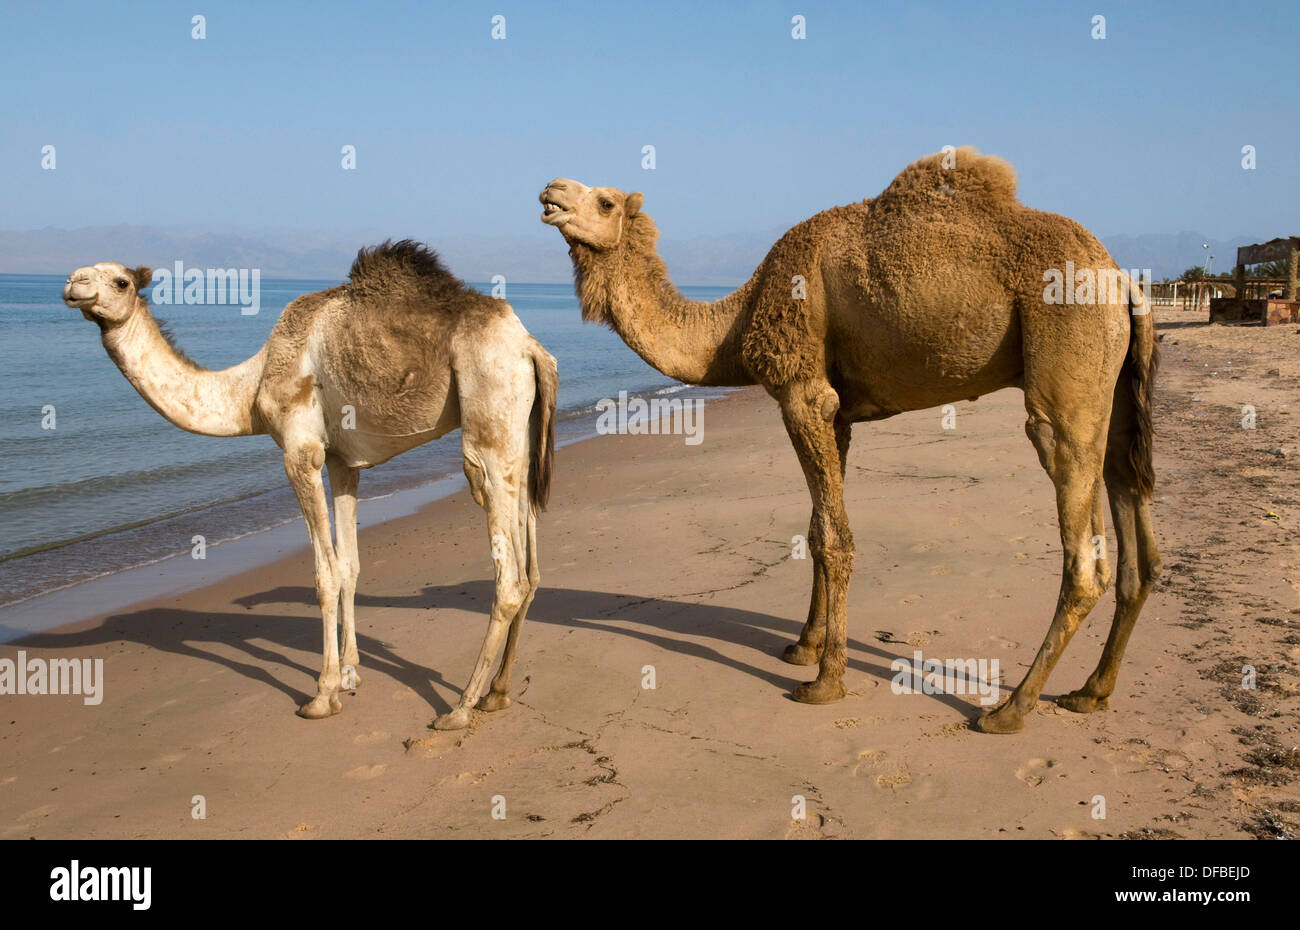 camels walking along the beach next to the Red Sea in the Sinai Desert of Egypt - Stock Image